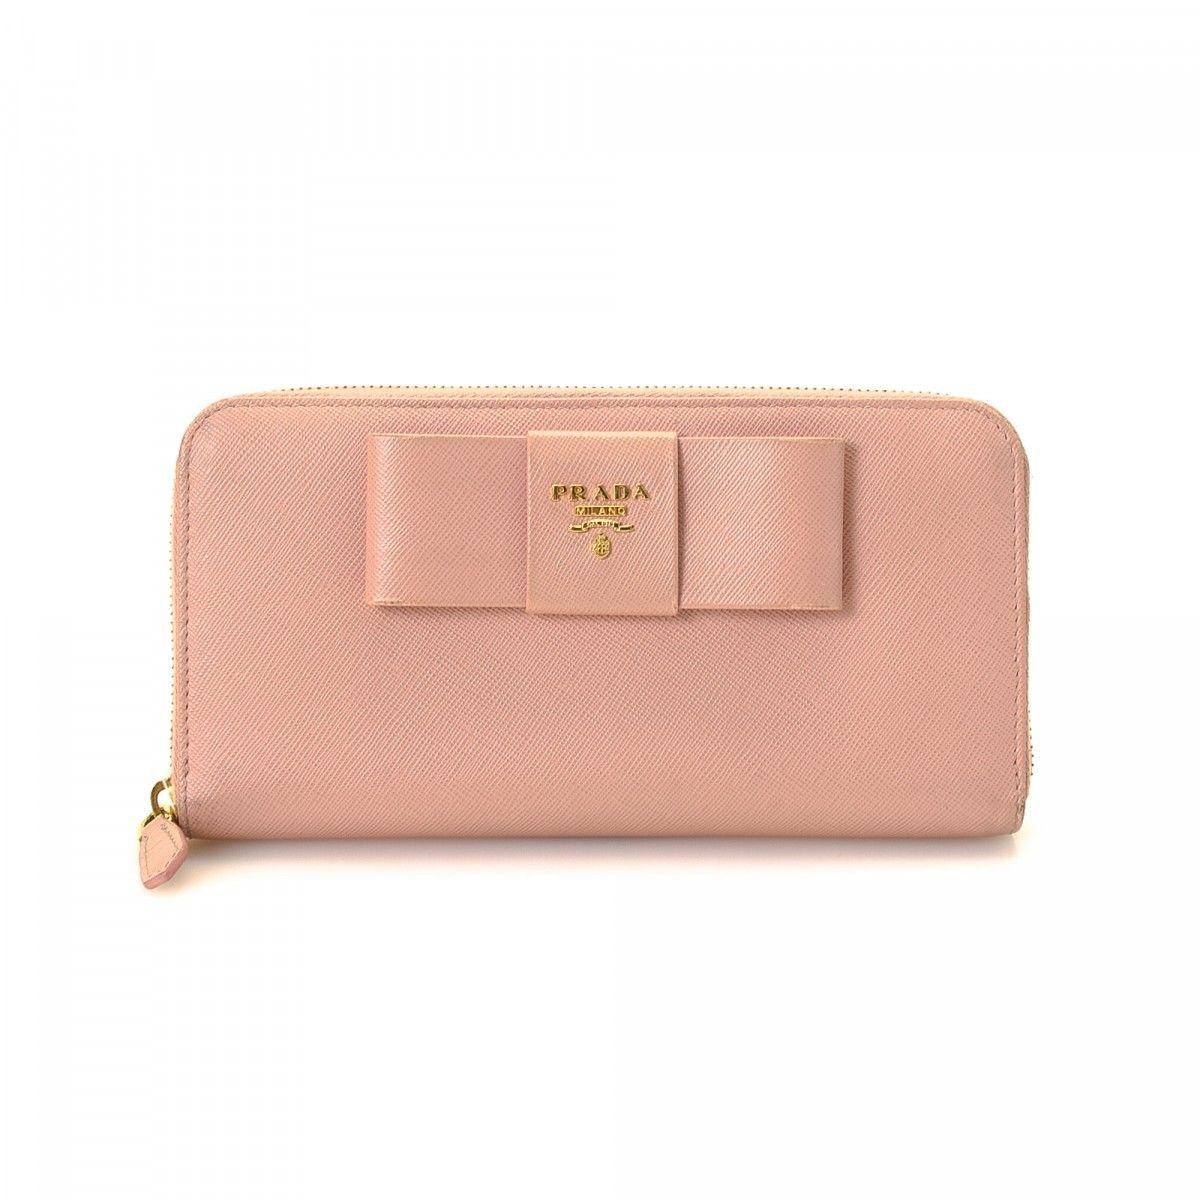 37d41c7ec27399 ... coupon for prada saffiano bow zip around wallet e76e4 1ad99